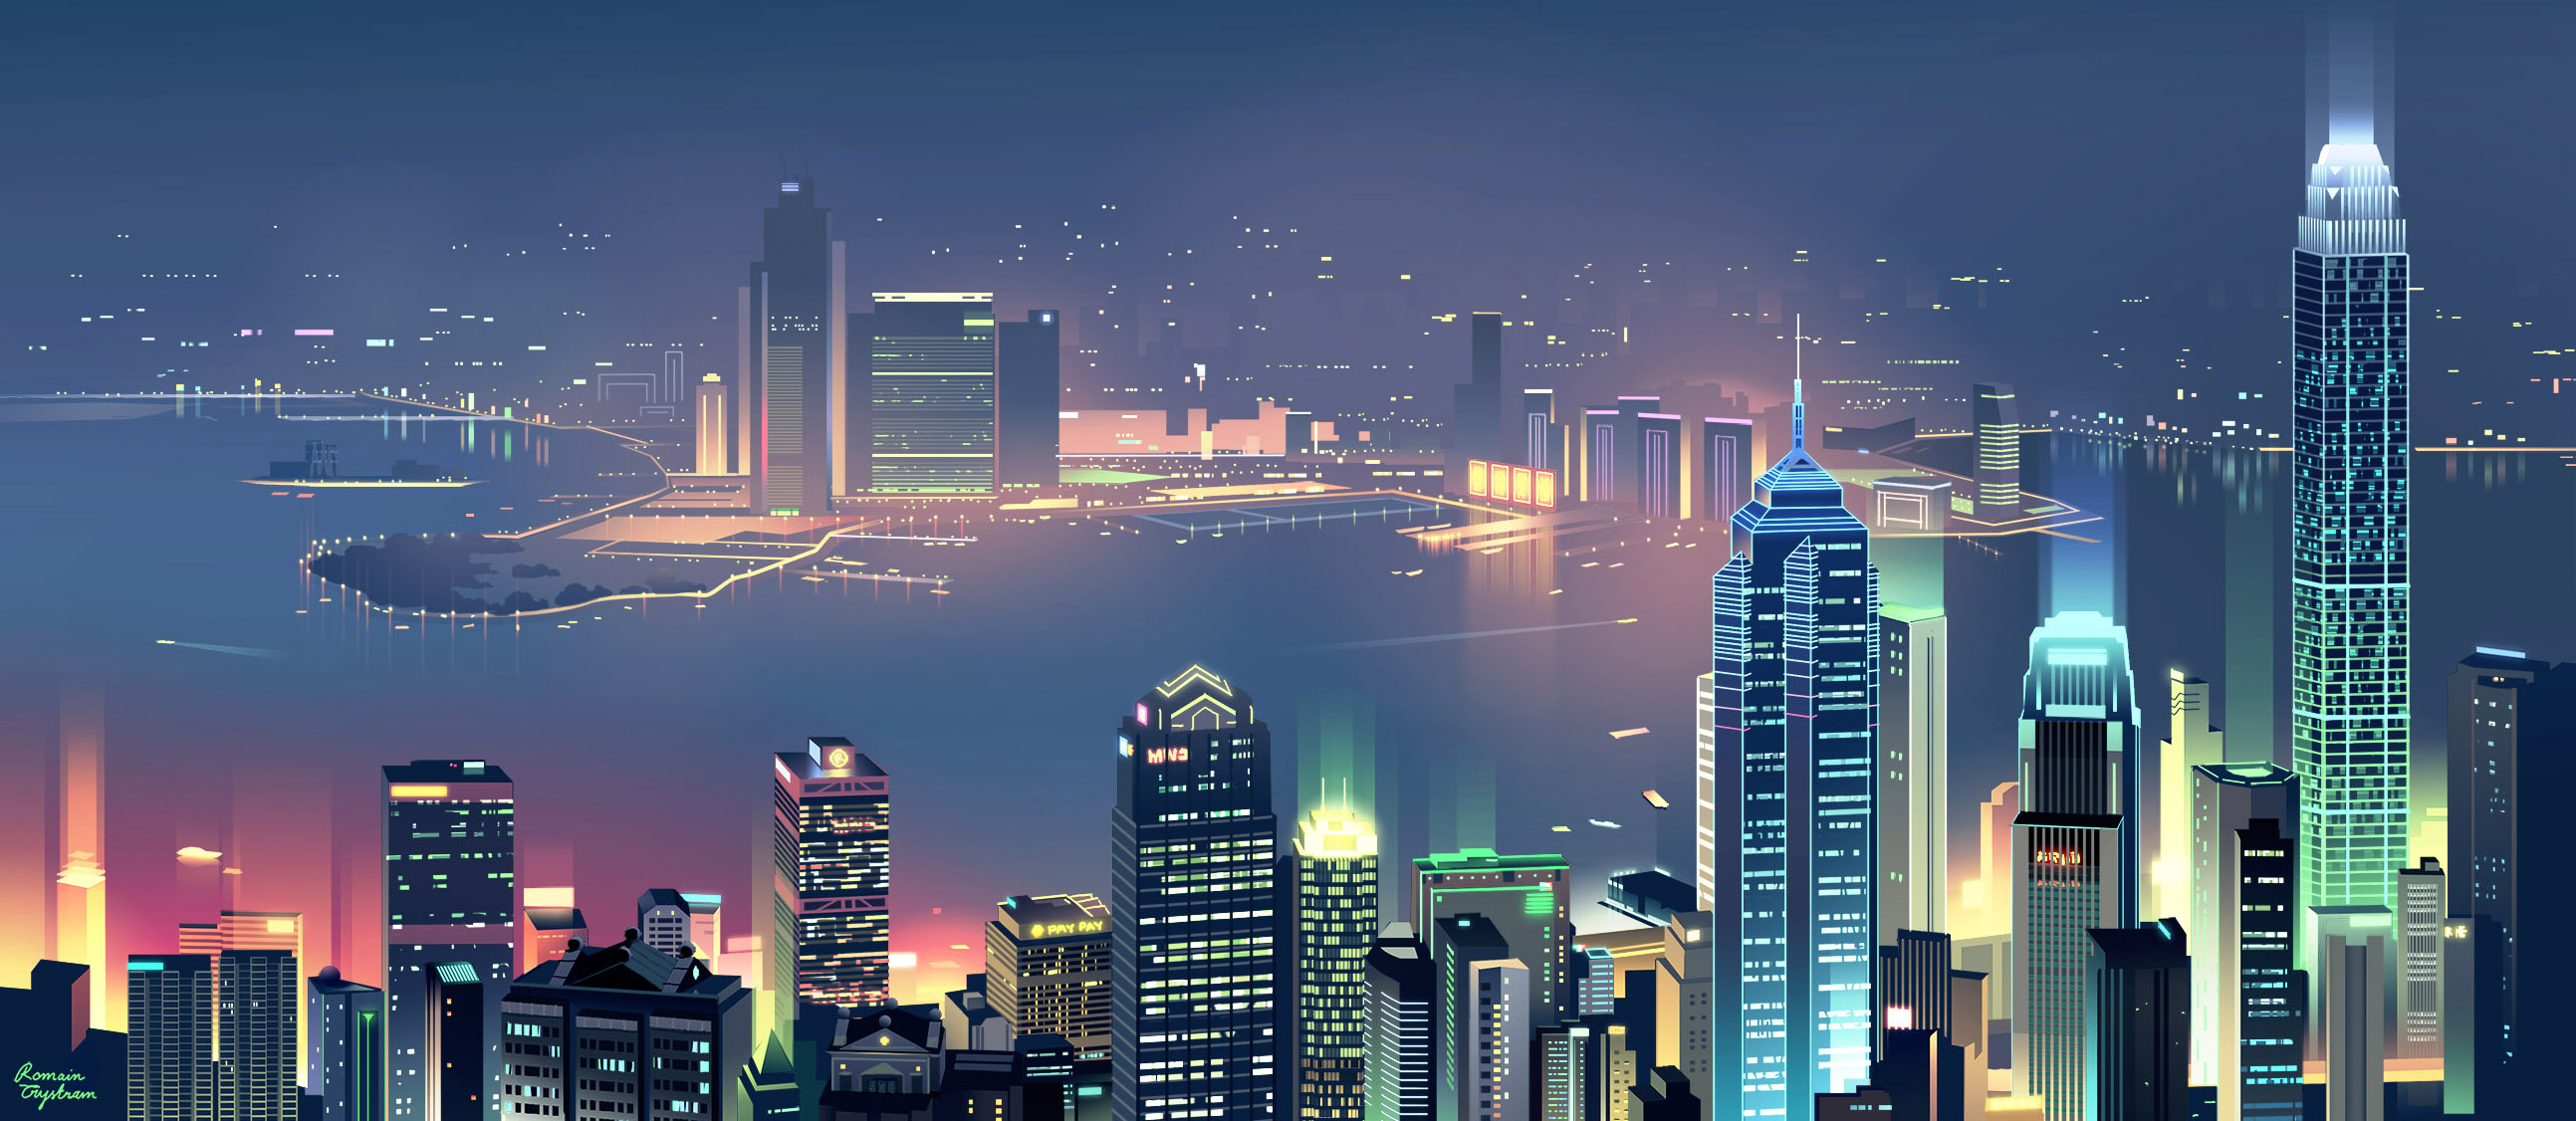 Cute Love Animations Wallpapers City Skyline Minimalist Hd Artist 4k Wallpapers Images